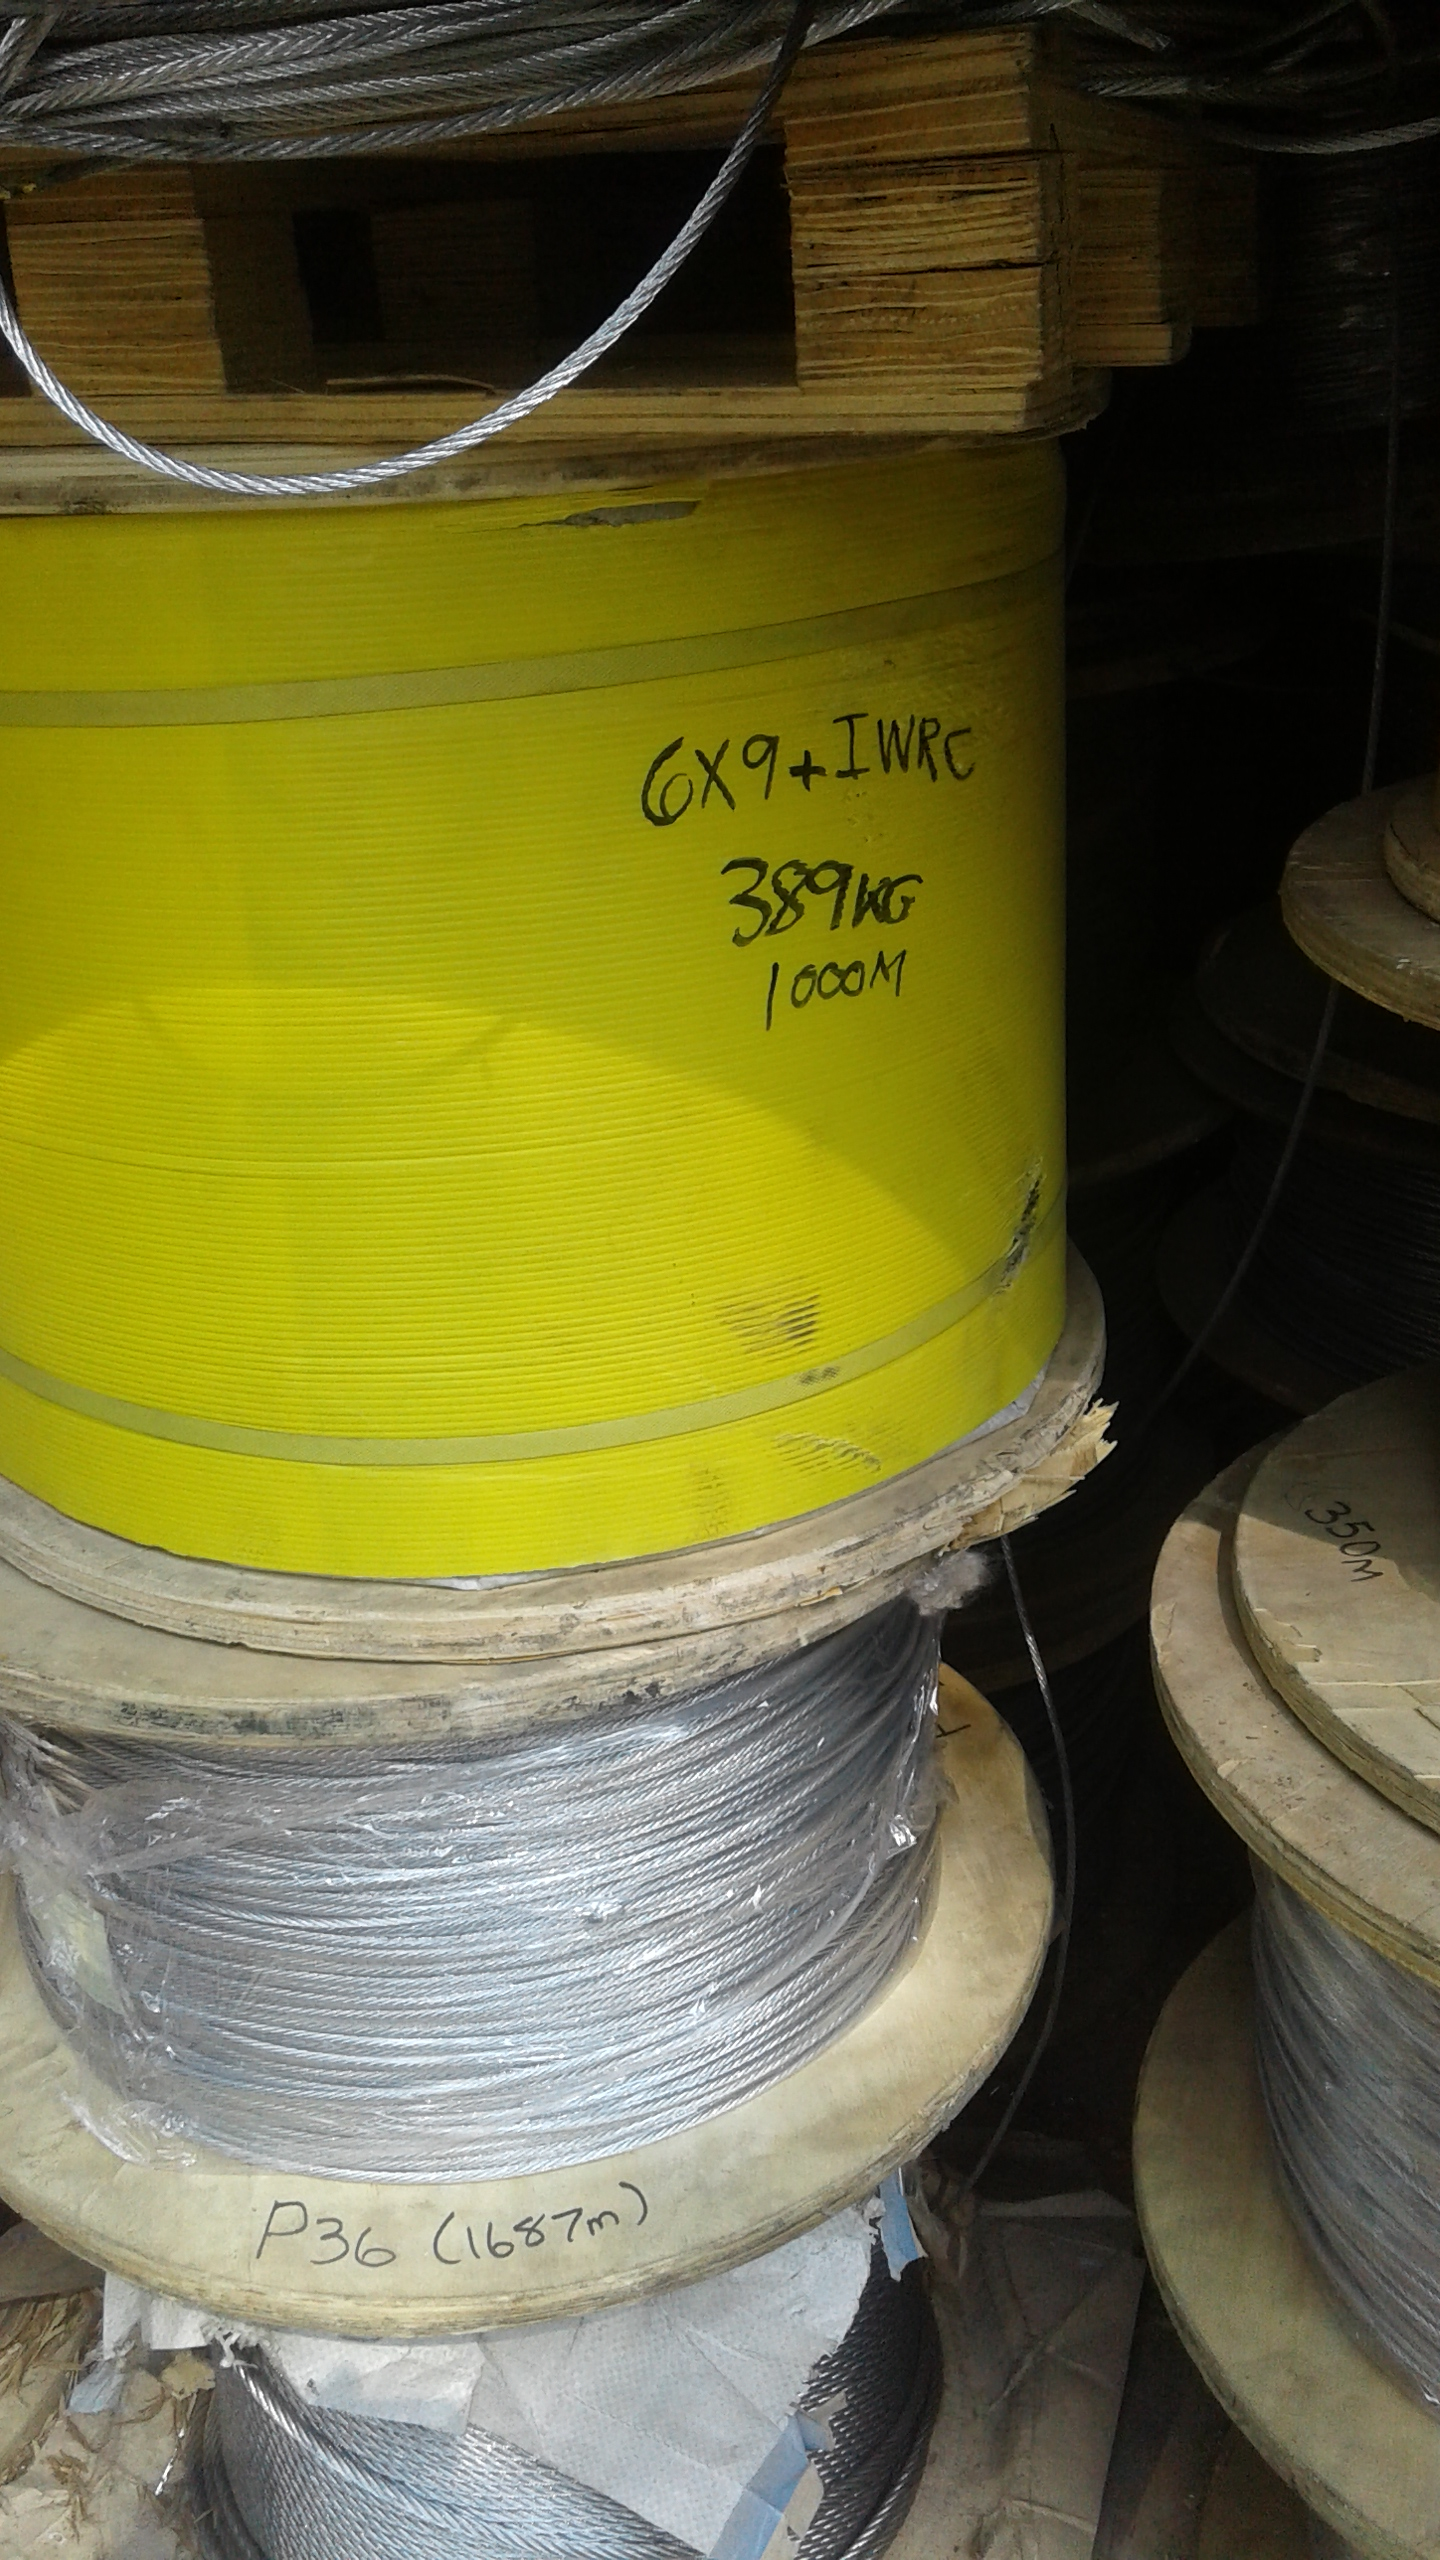 GALVANIZED STEEL WIRE CABLE ROPE from R1.50 p.m